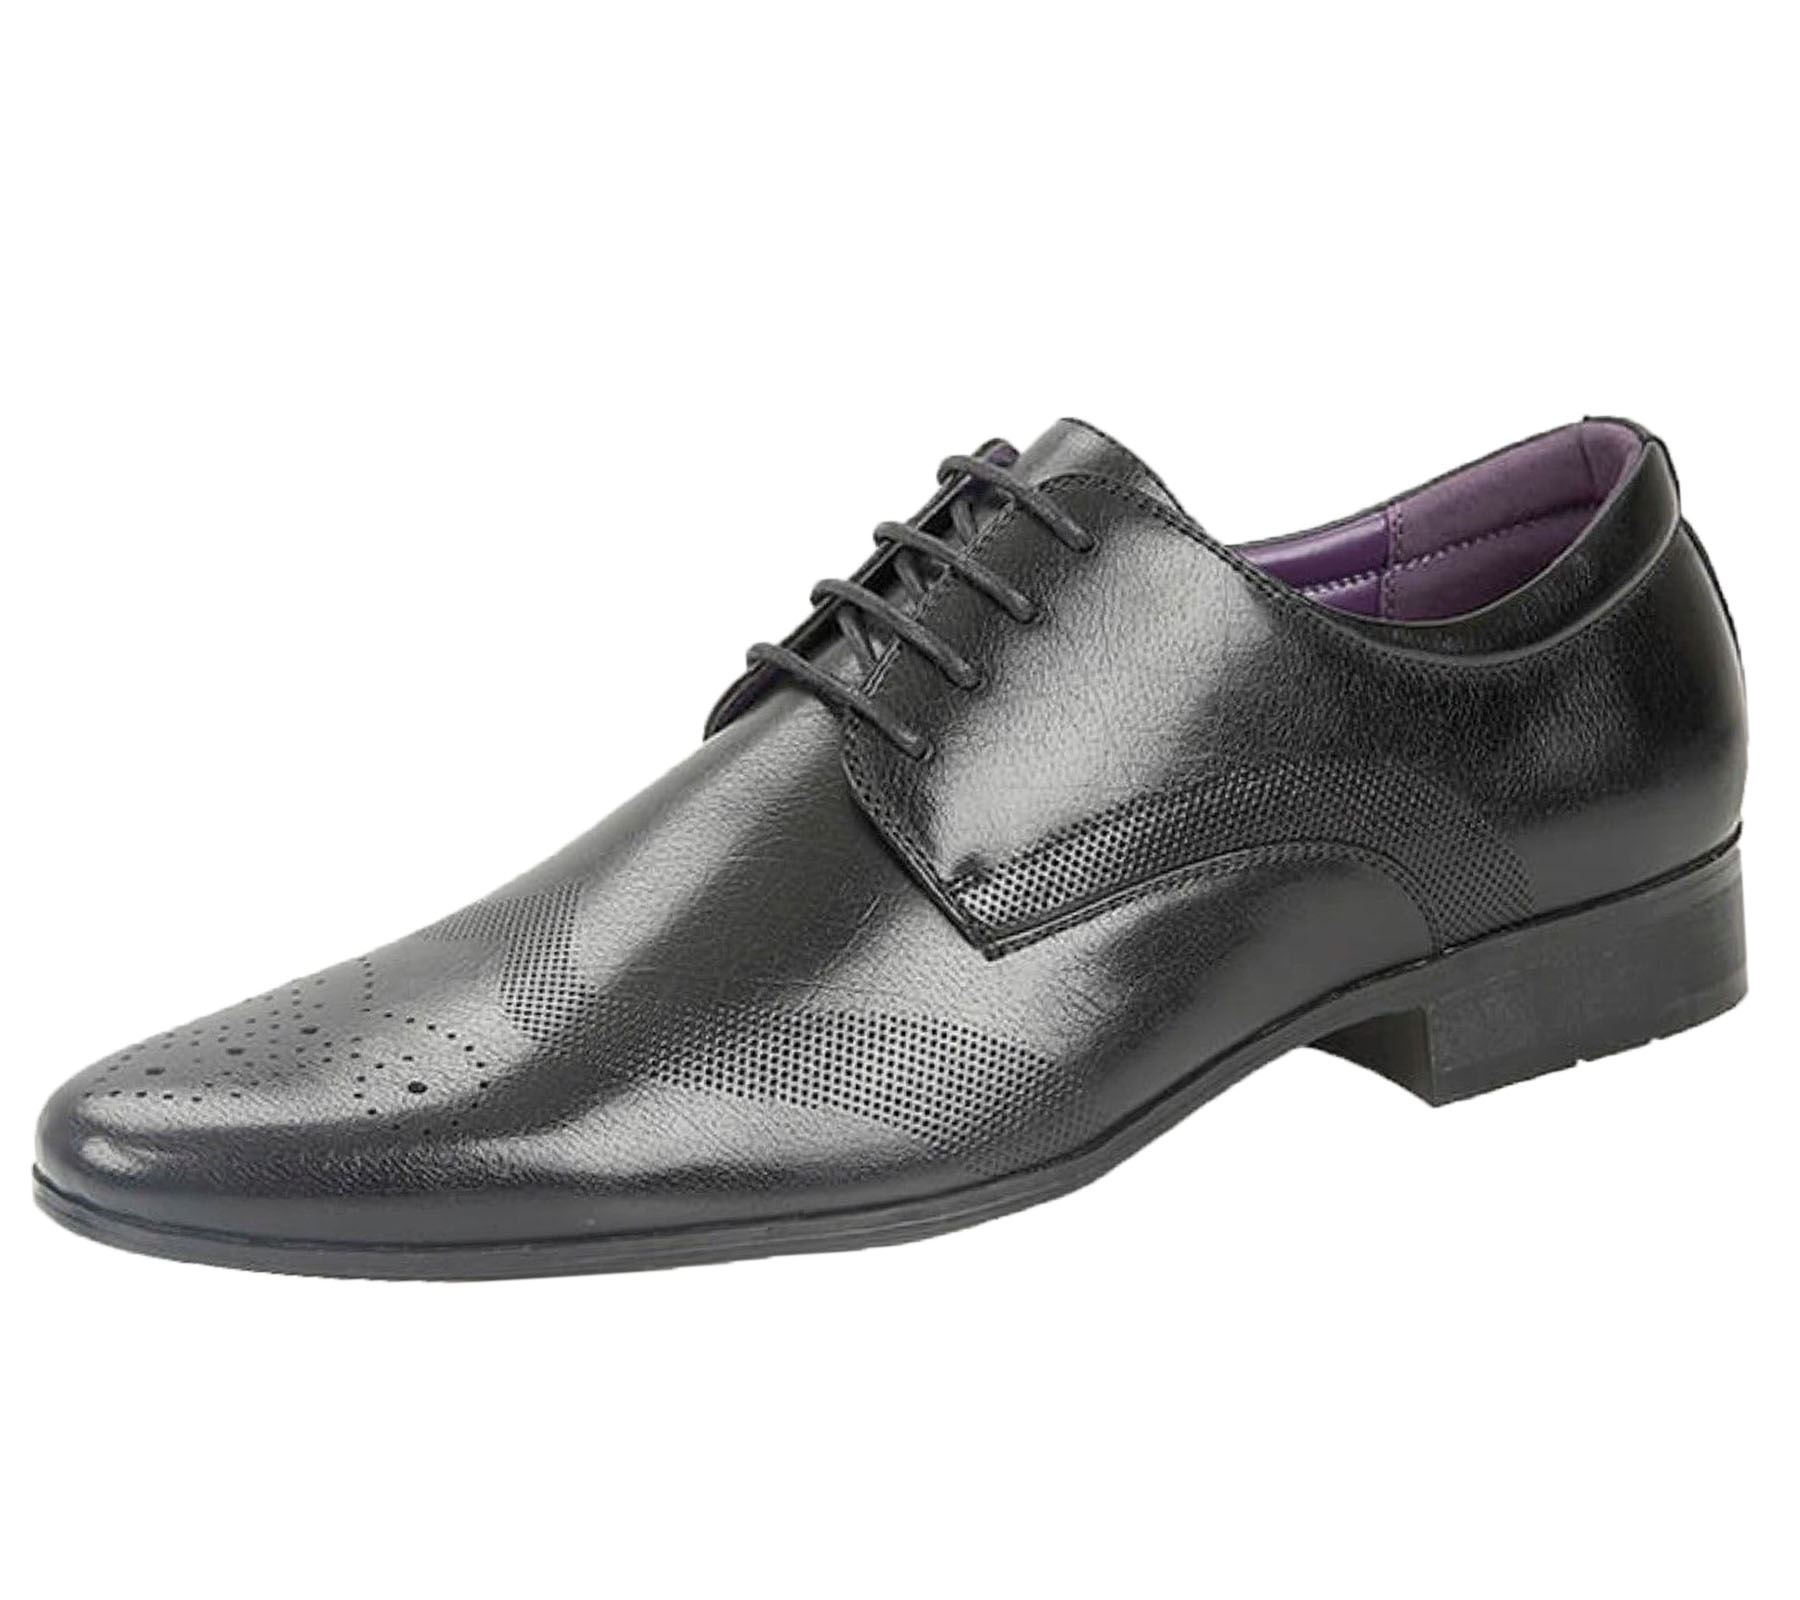 Mens-Brogues-Shoes-Office-Wedding-Formal-Smart-Dress-Shoes-New-Size miniatura 20